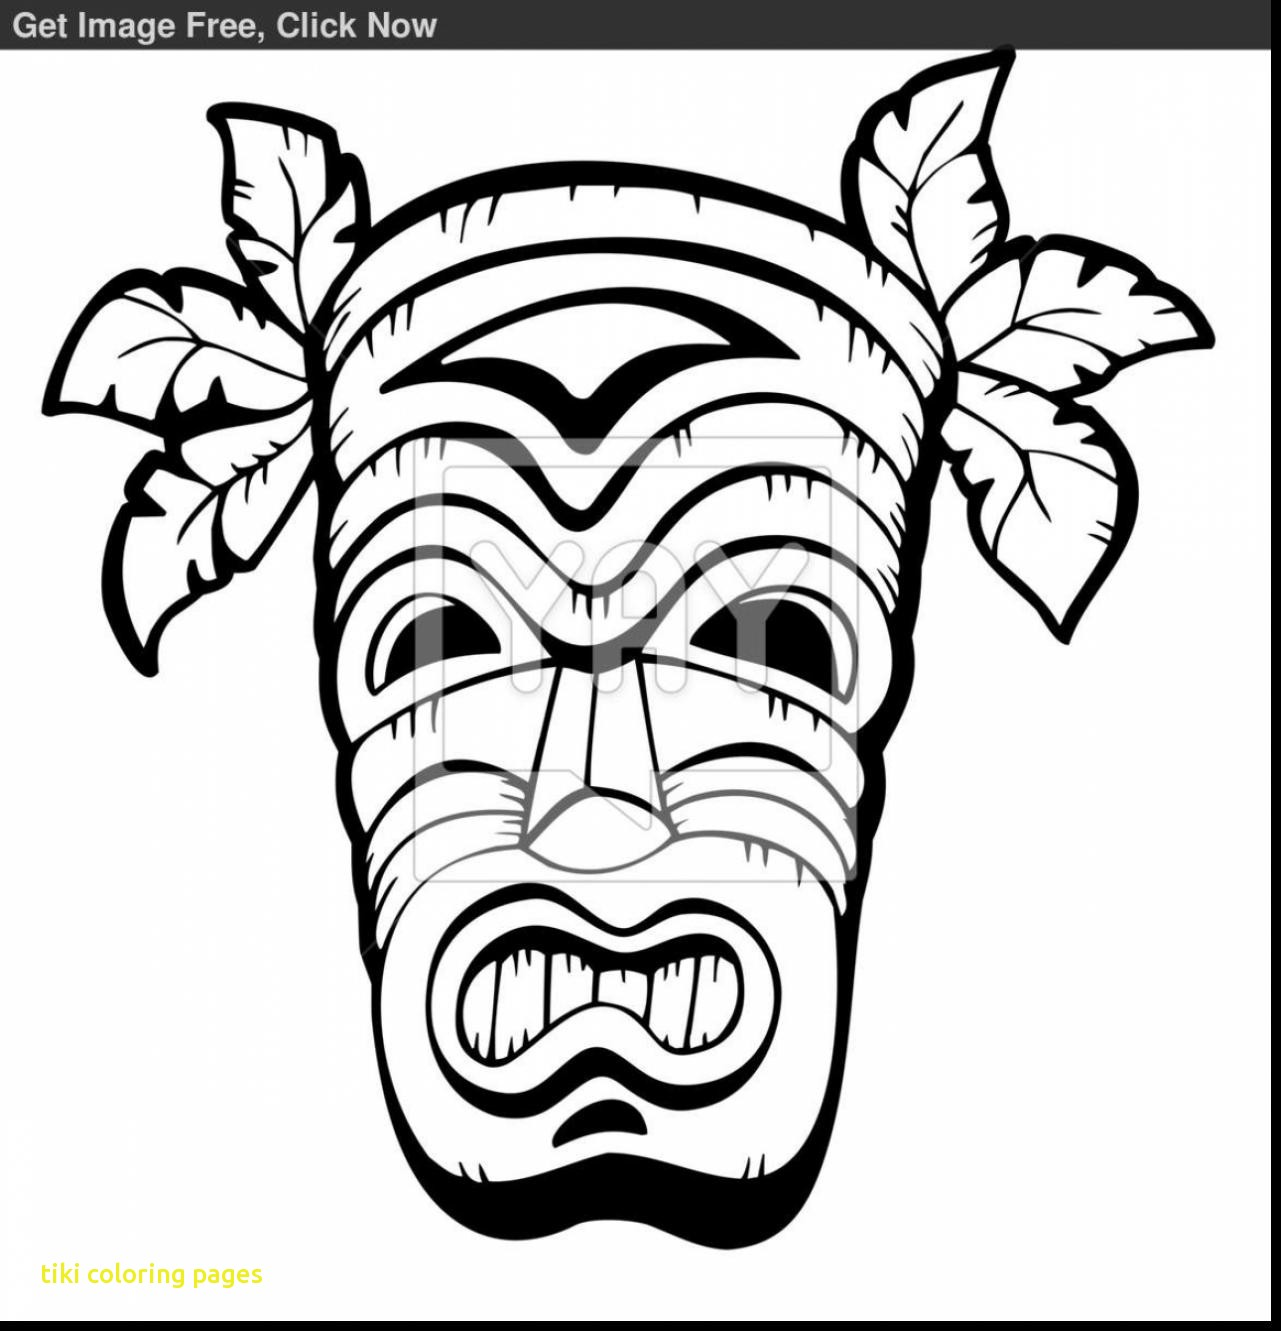 tiki man coloring pages - photo#19